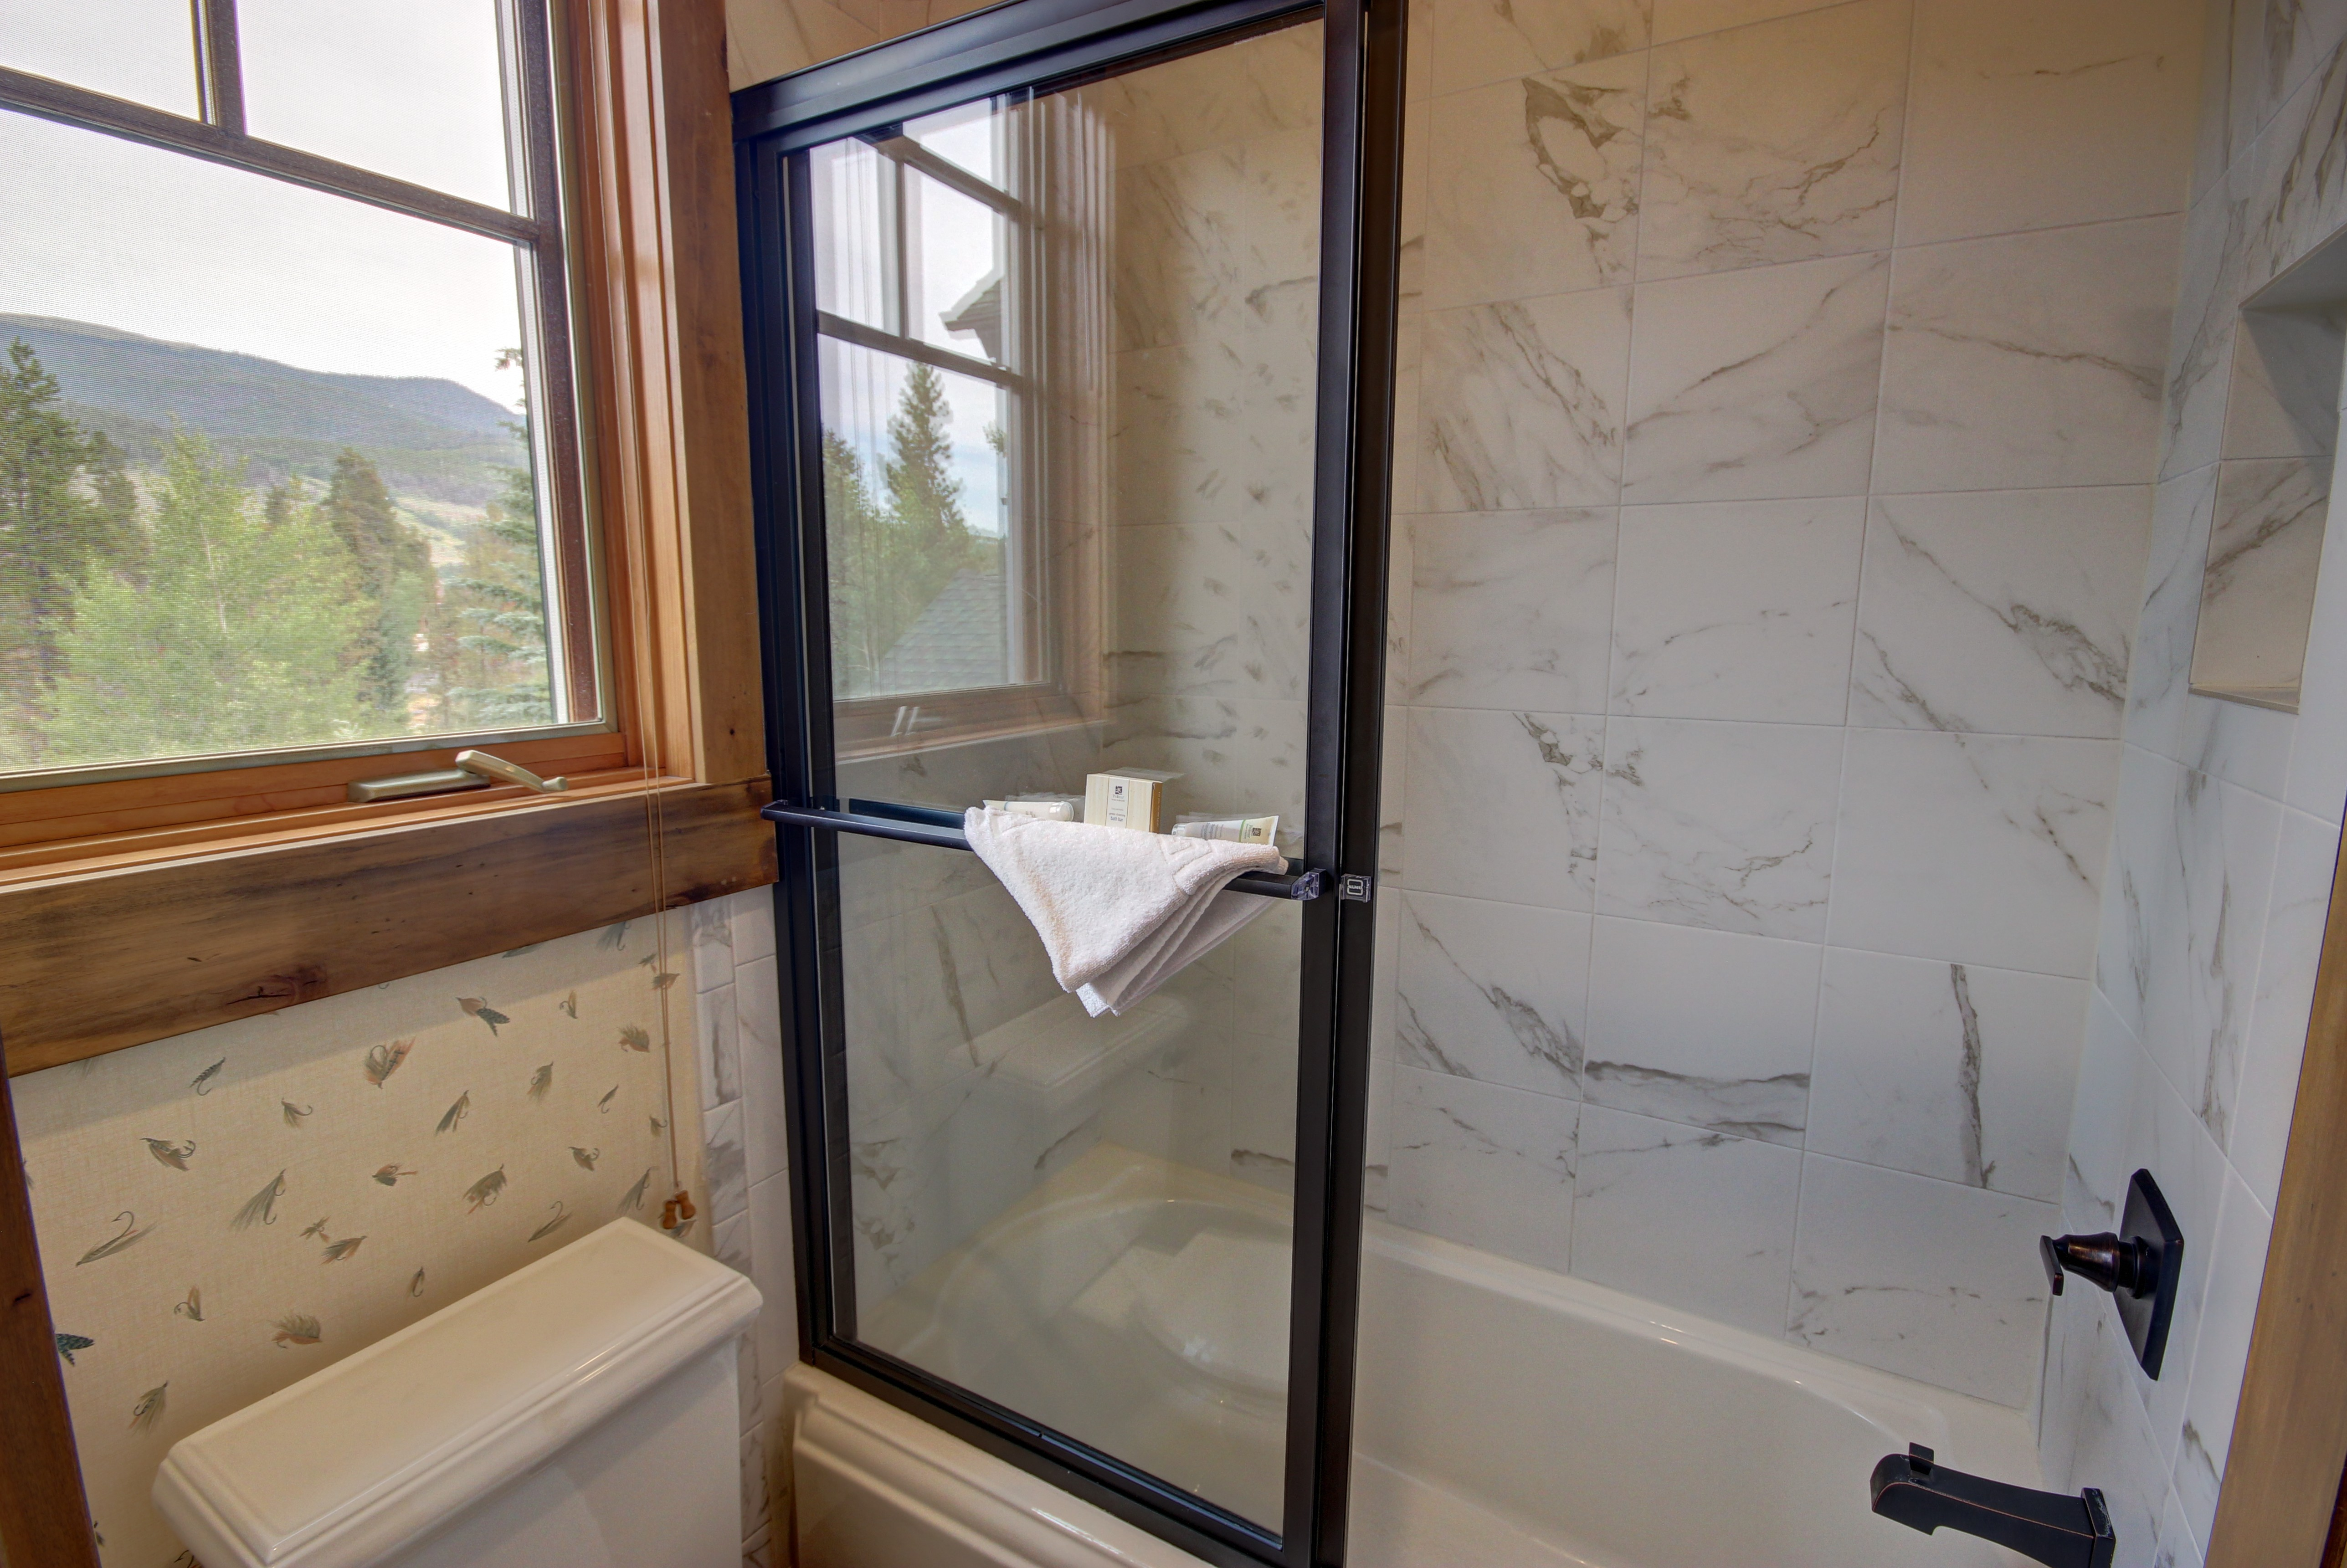 Bathroom with a relaxing tub and shower